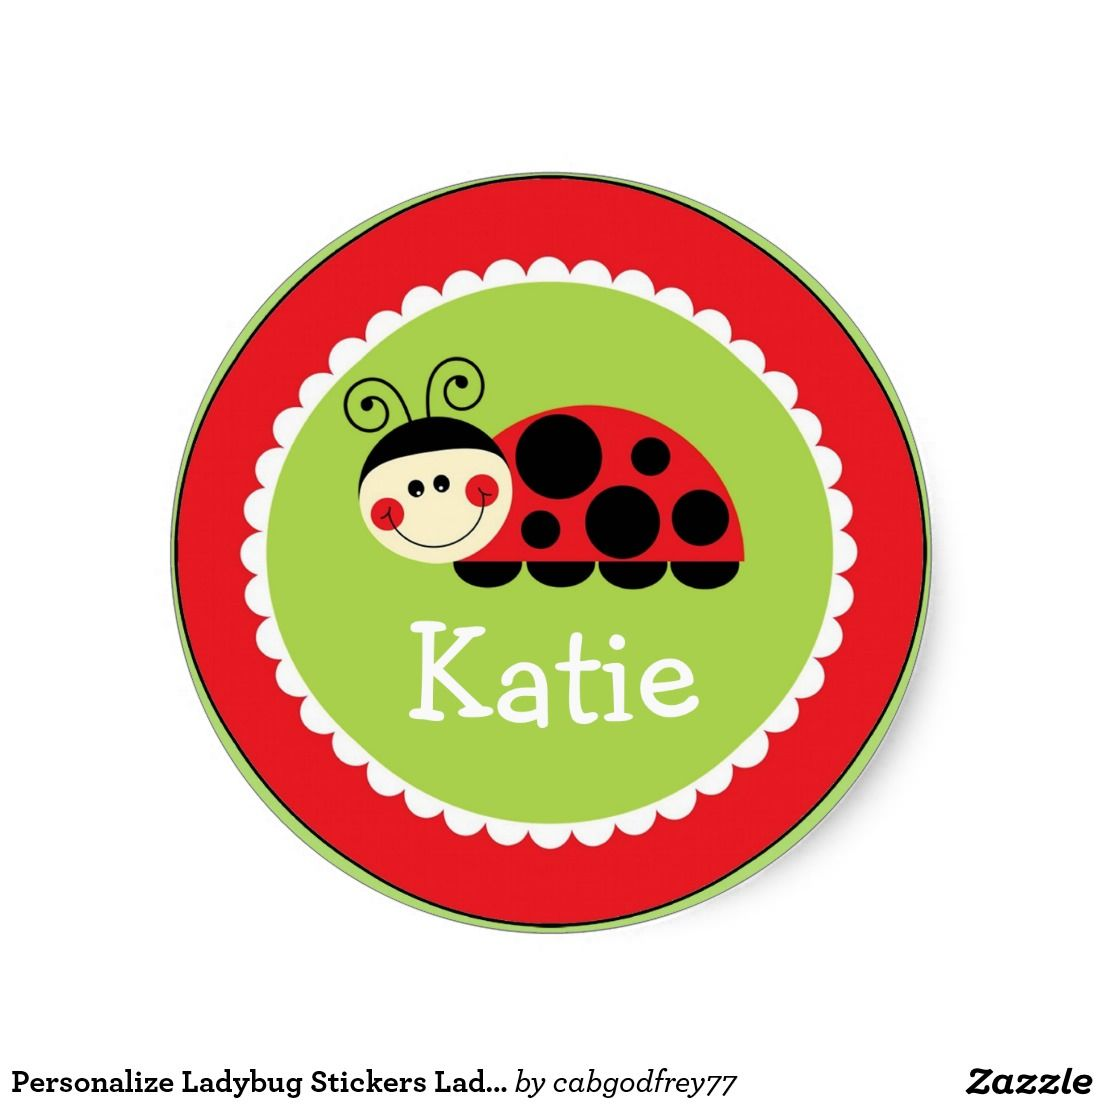 personalise ladybug stickers lady bug sticker red lienky